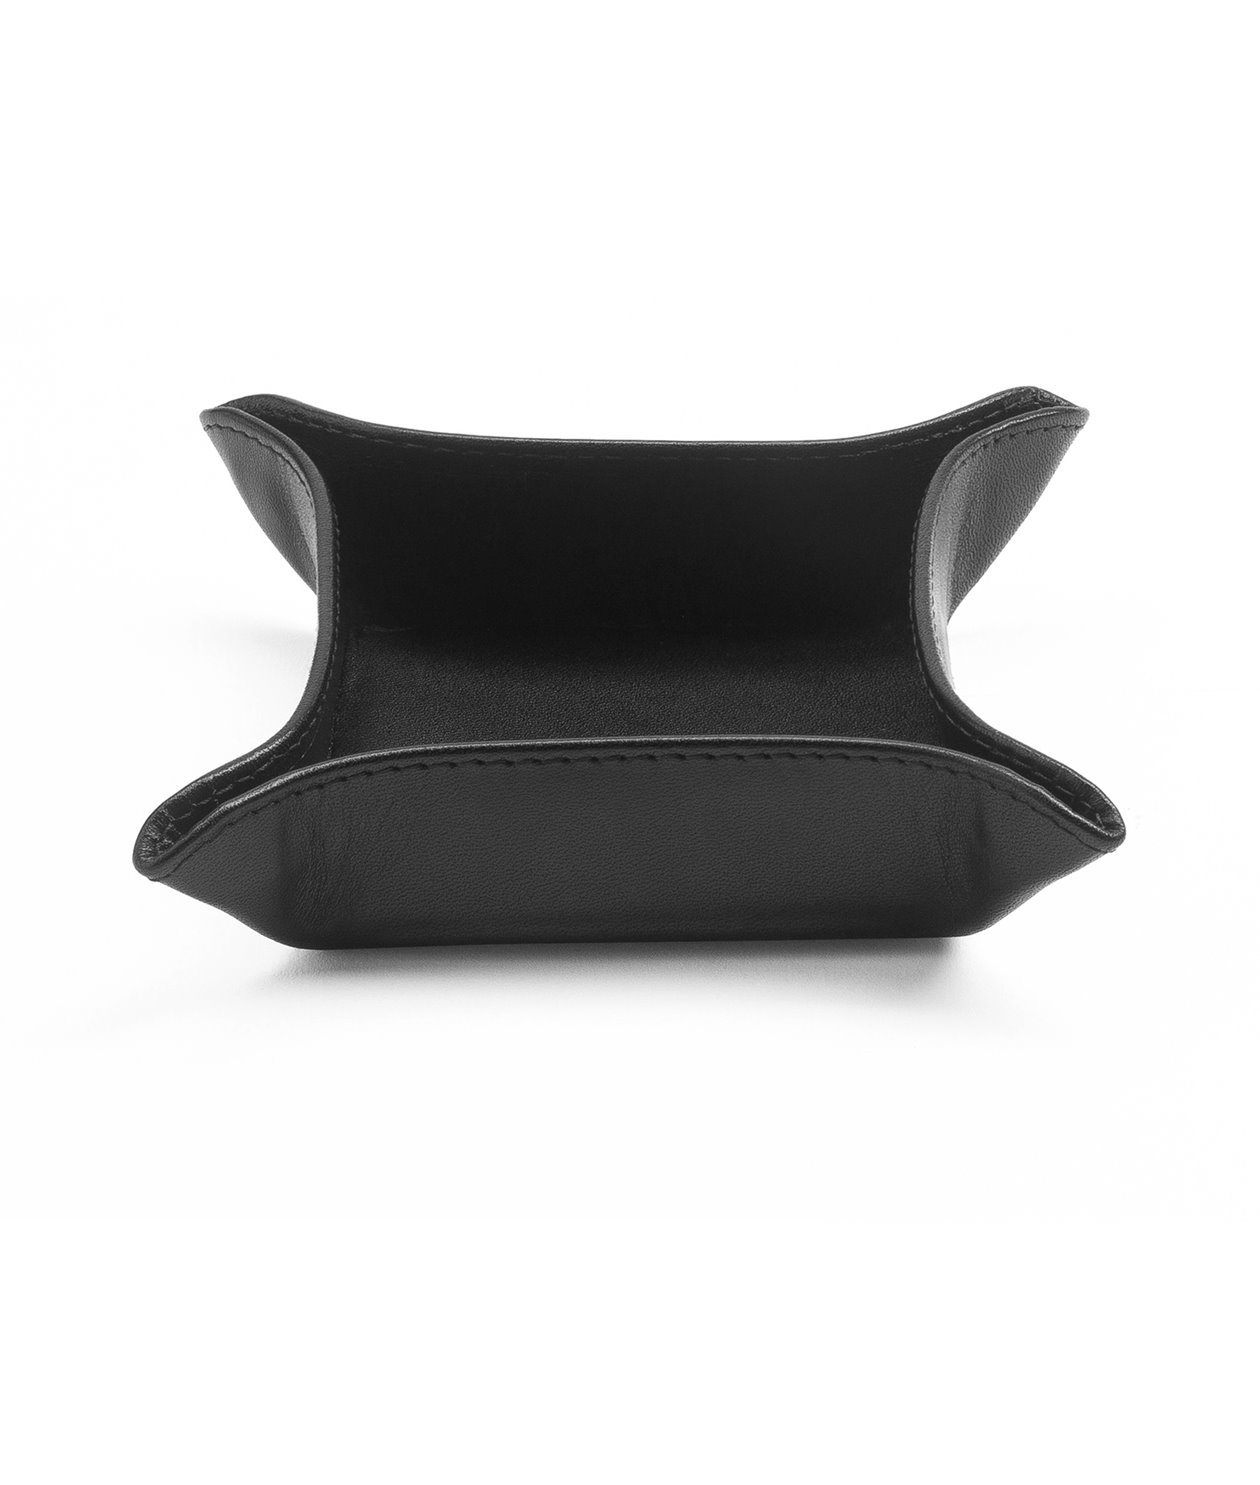 Palmgrens - Fat S Svart - Genuine handcrafted leather since 1896 fd7f63289d451